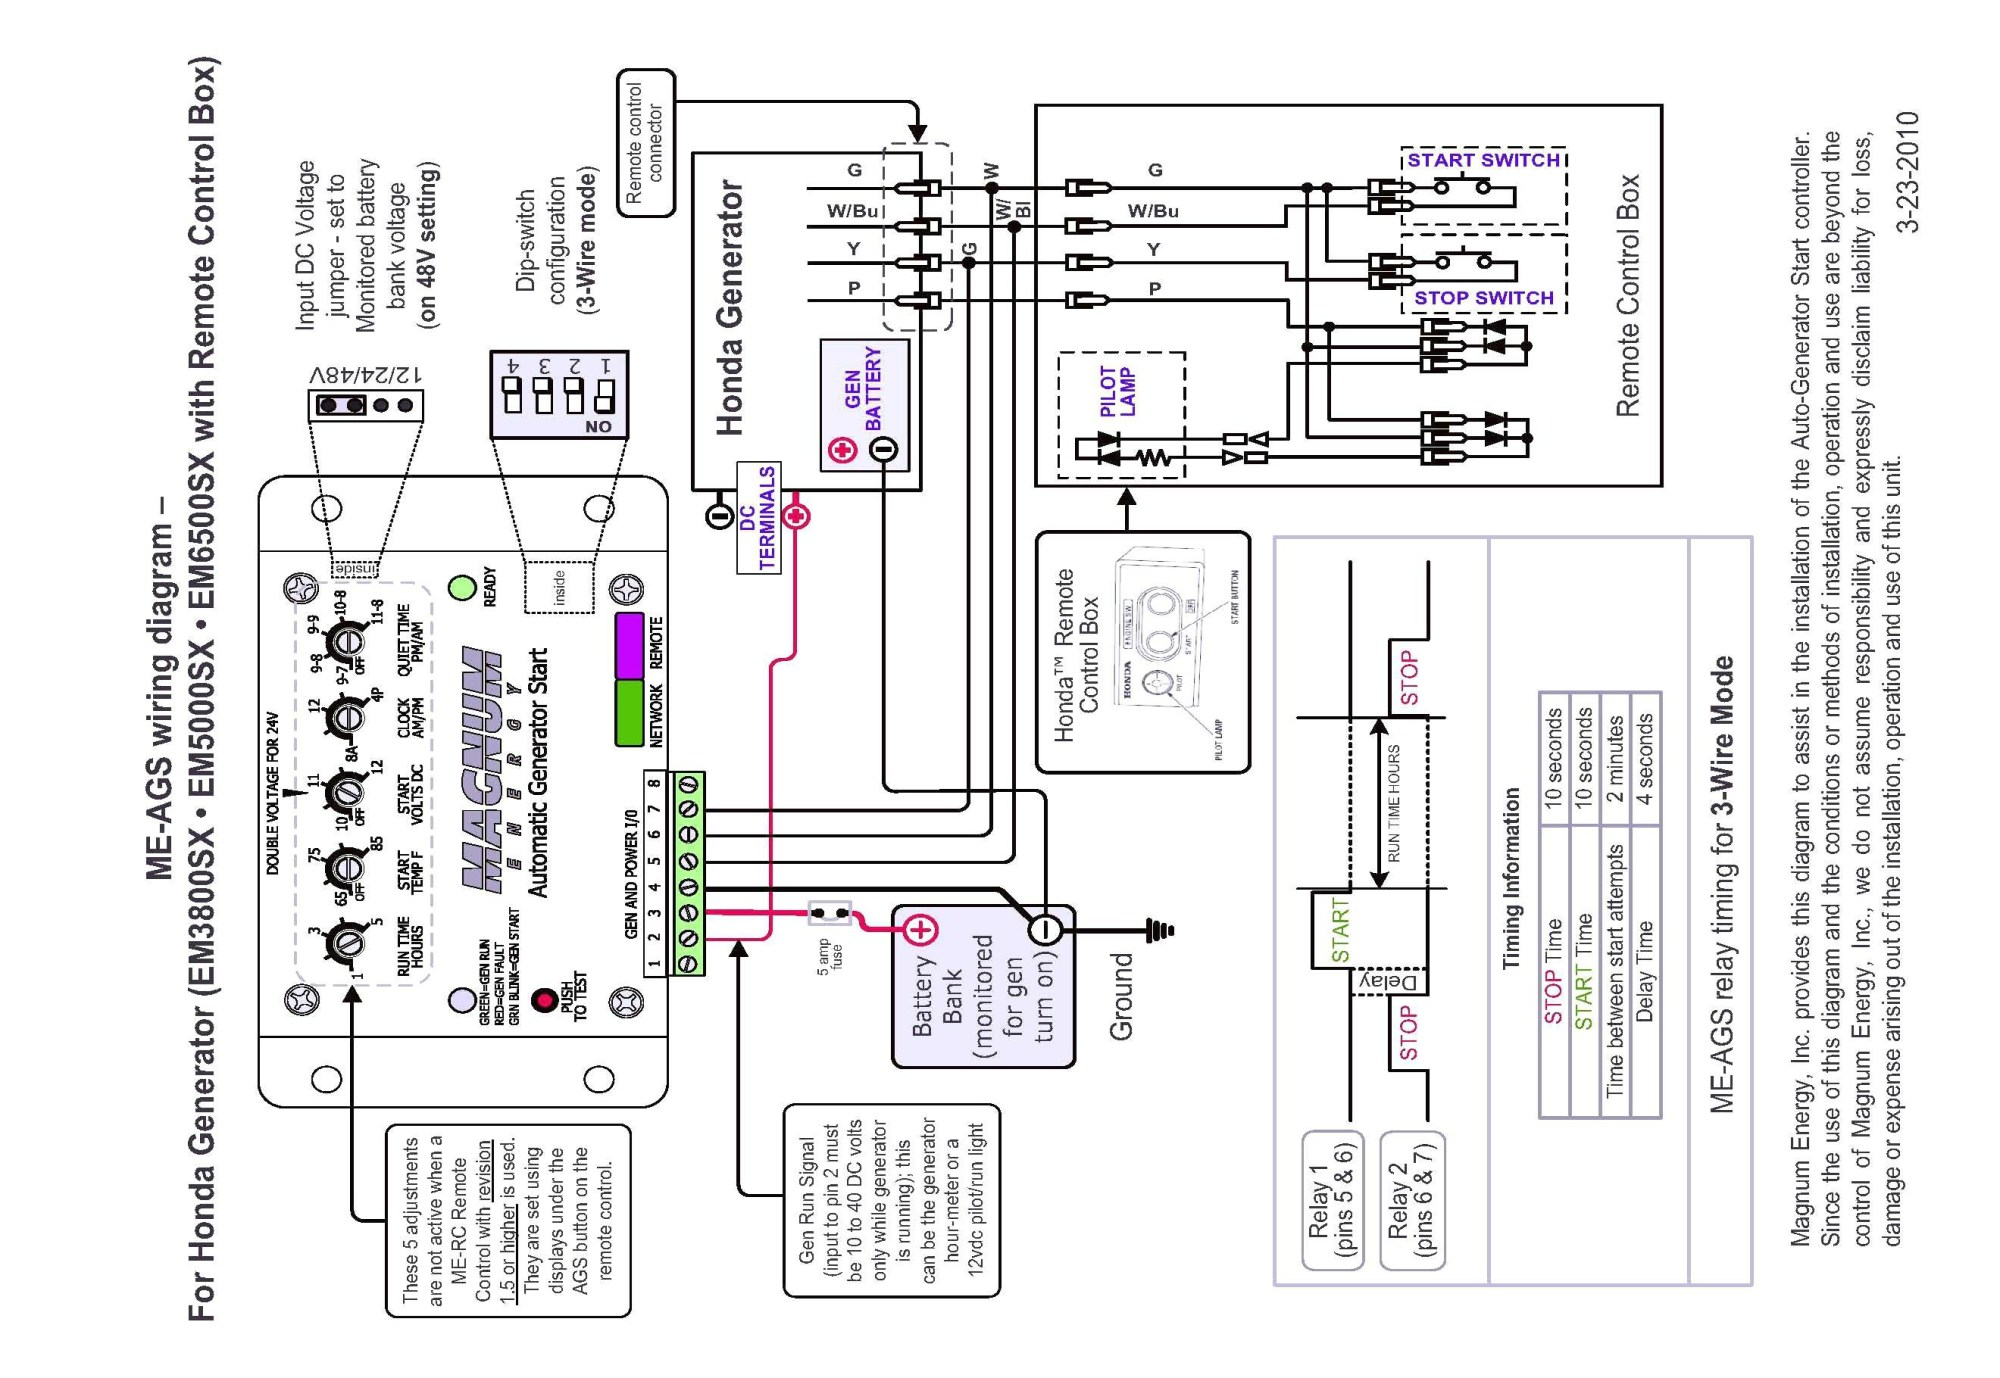 hight resolution of generac battery charger wiring diagram wiring diagram for 20kw generac generator new generac battery charger